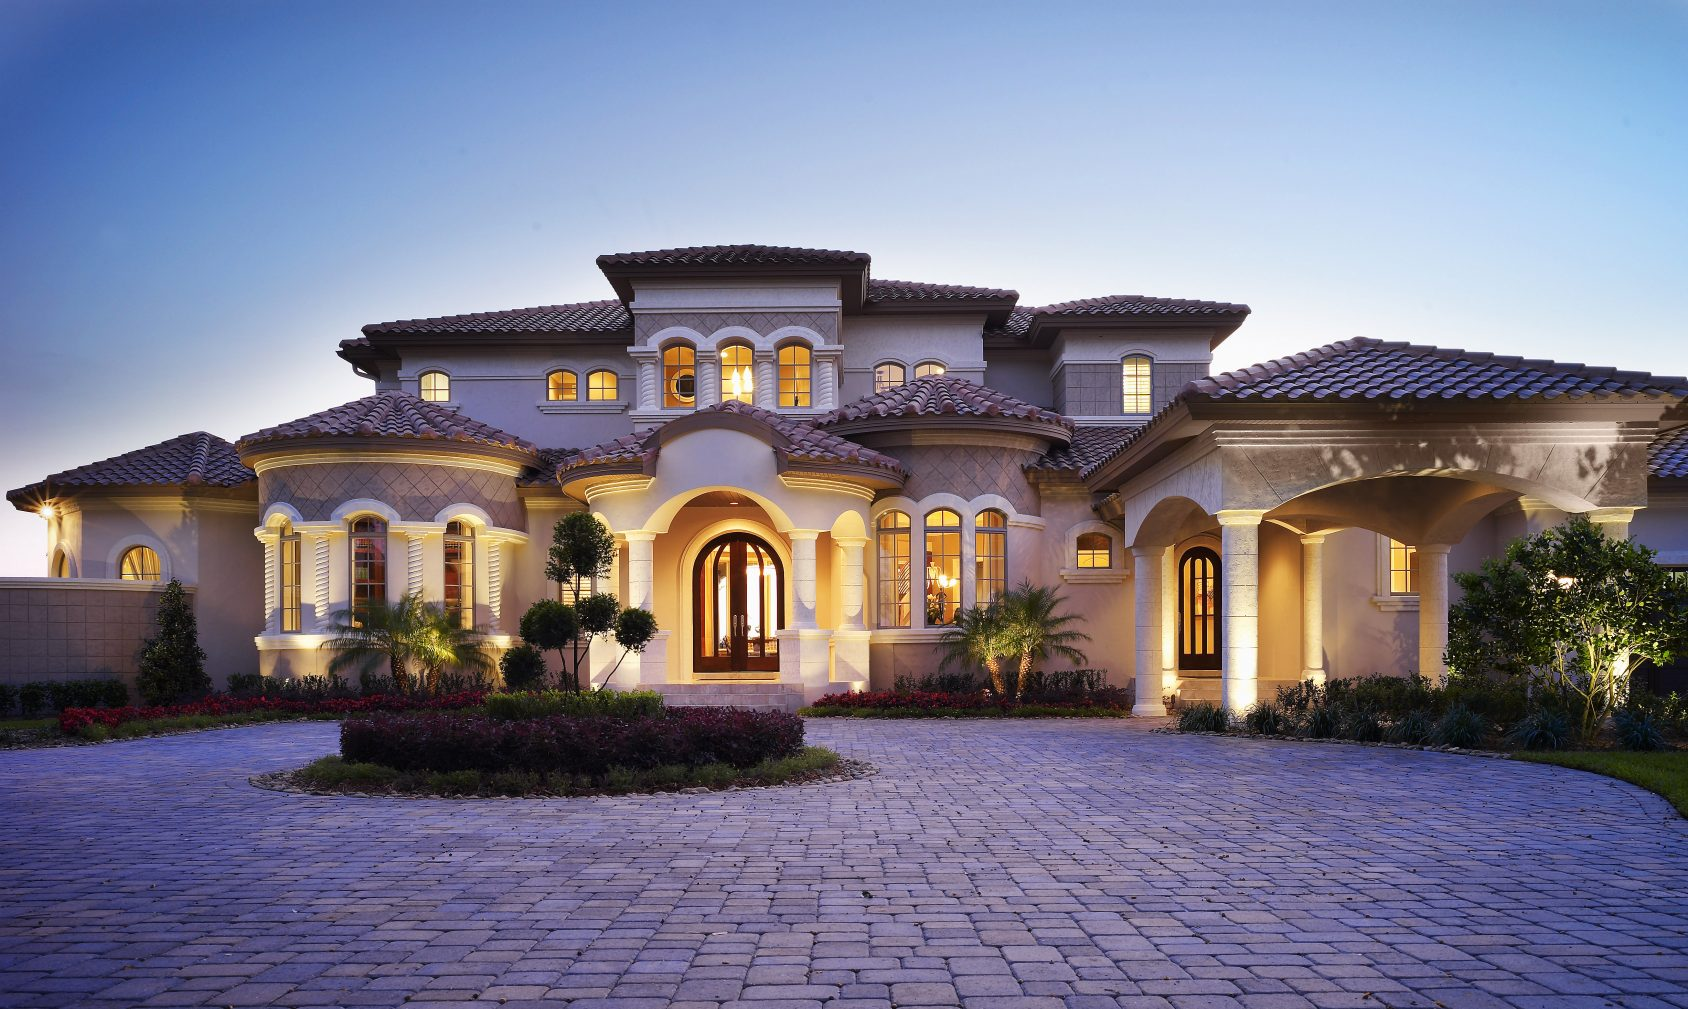 Luxury Mansions: Custom Home Builders Tampa FL, Luxury Home Builders Tampa